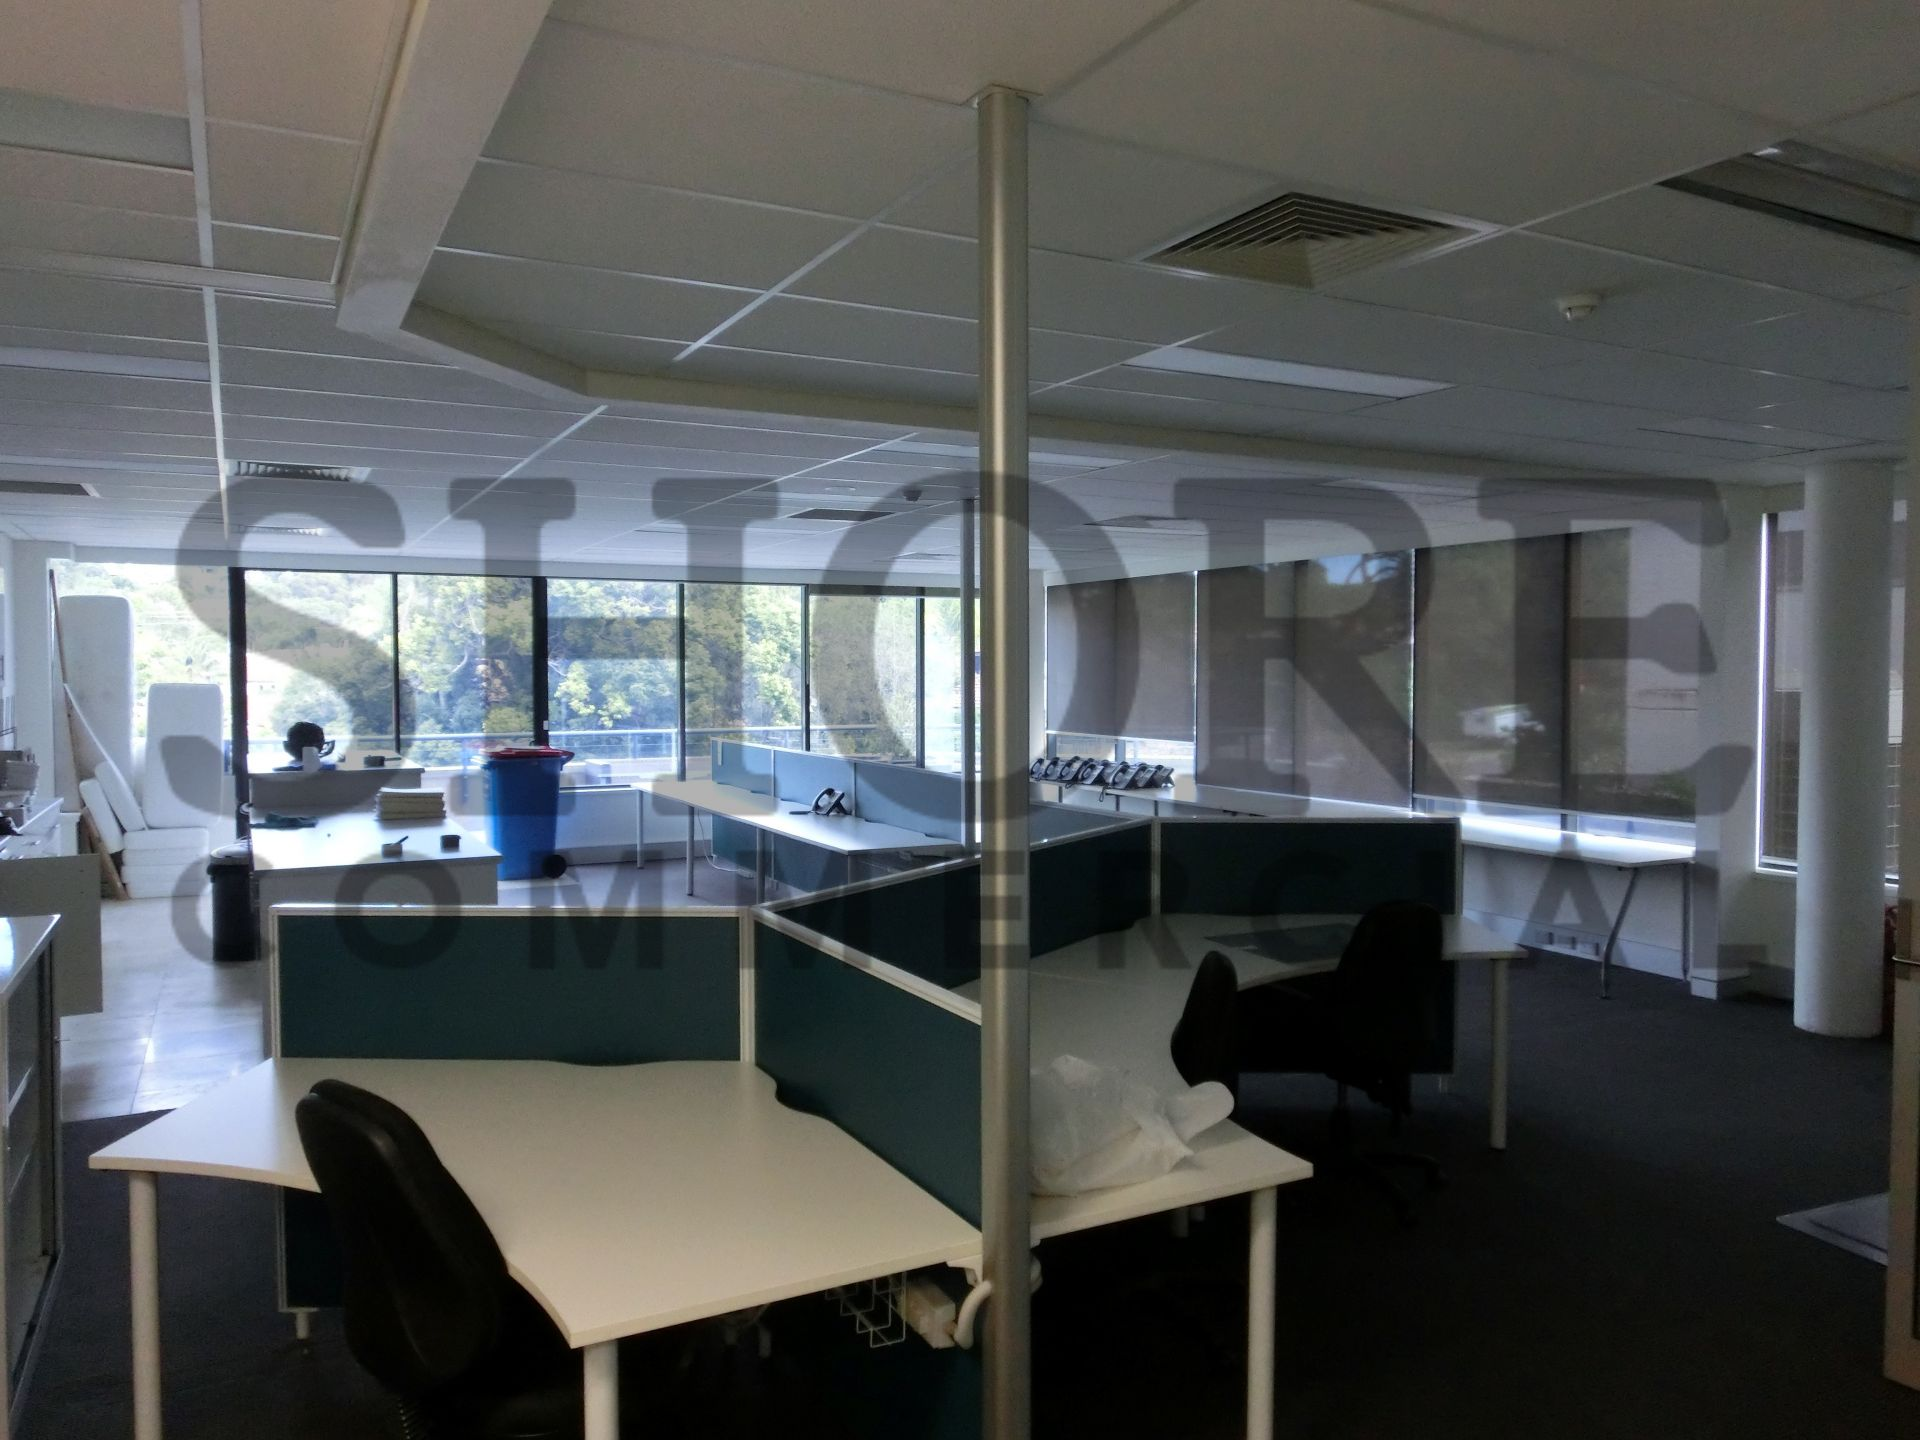 RECENTLY REFUBISHED OFFICE SPACE WITH STATE OF THE ART FITOUT